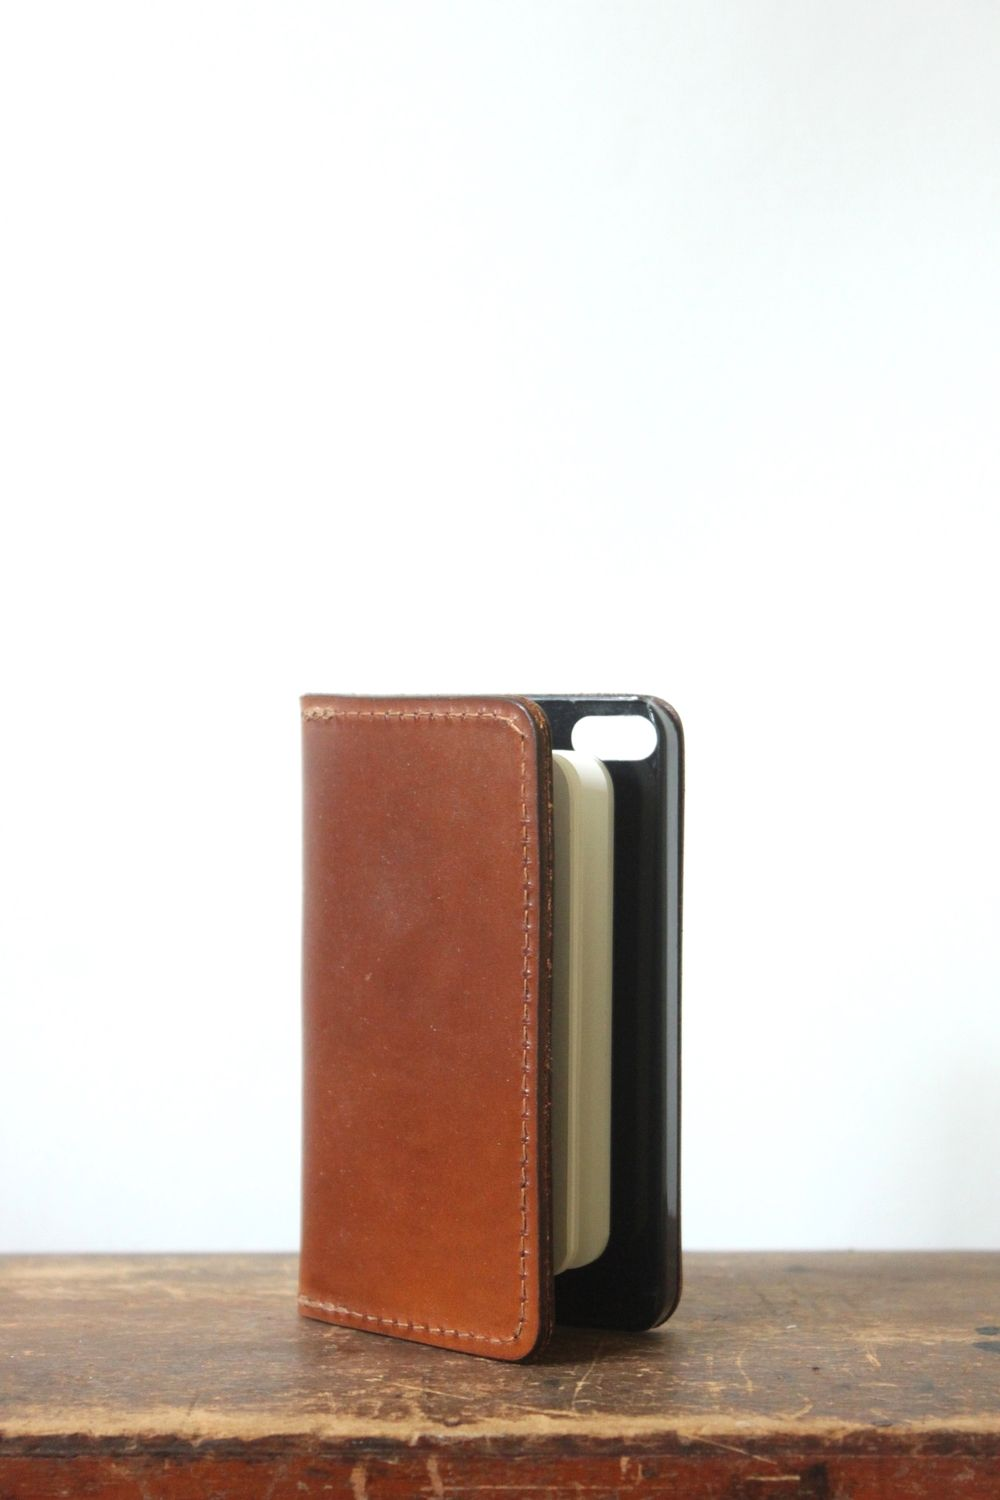 Leather bound notebook wallet phone case #leather